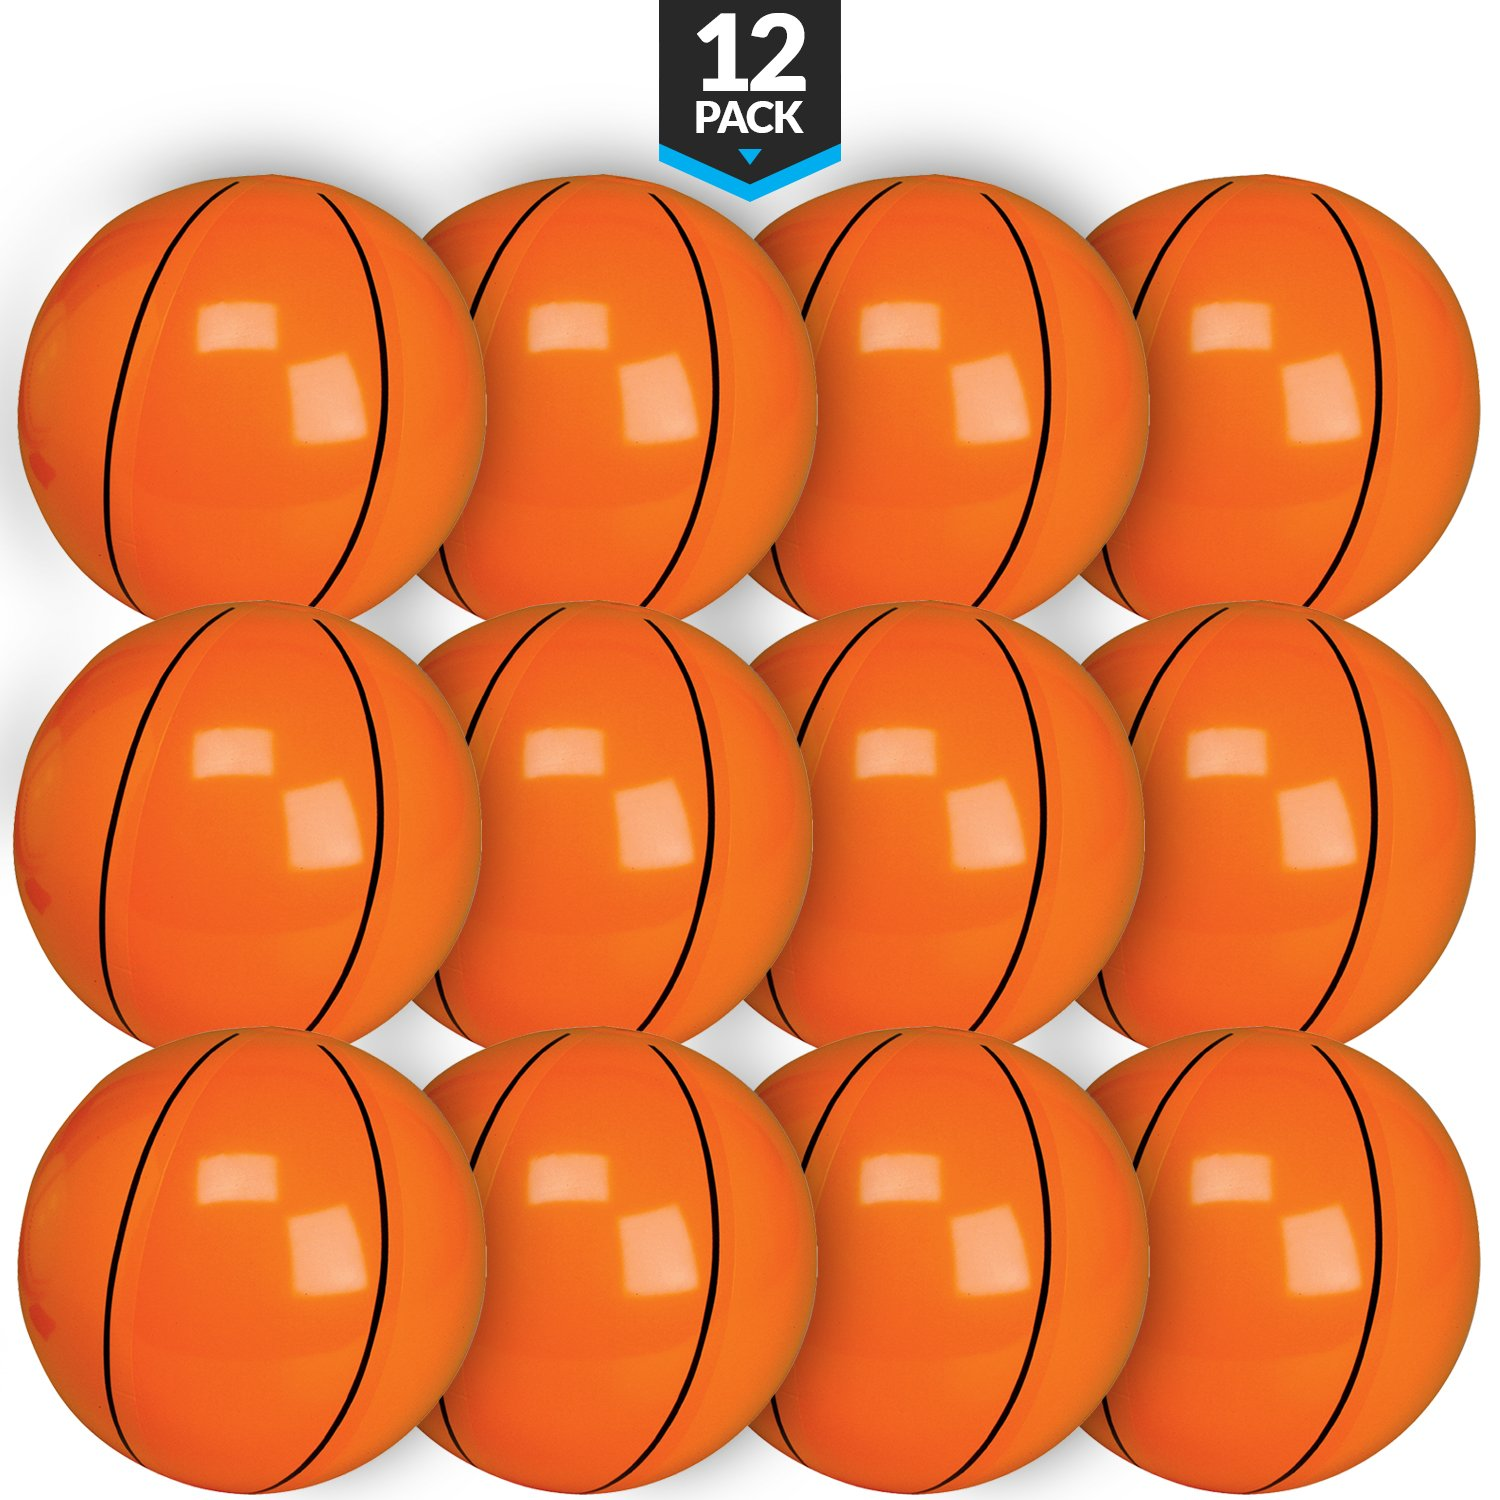 Inflatable Basketballs One Dozen, 16 inch, For Sports Themed Birthday Parts And Beach/ Pool Party Games/ Favors by Bedwina